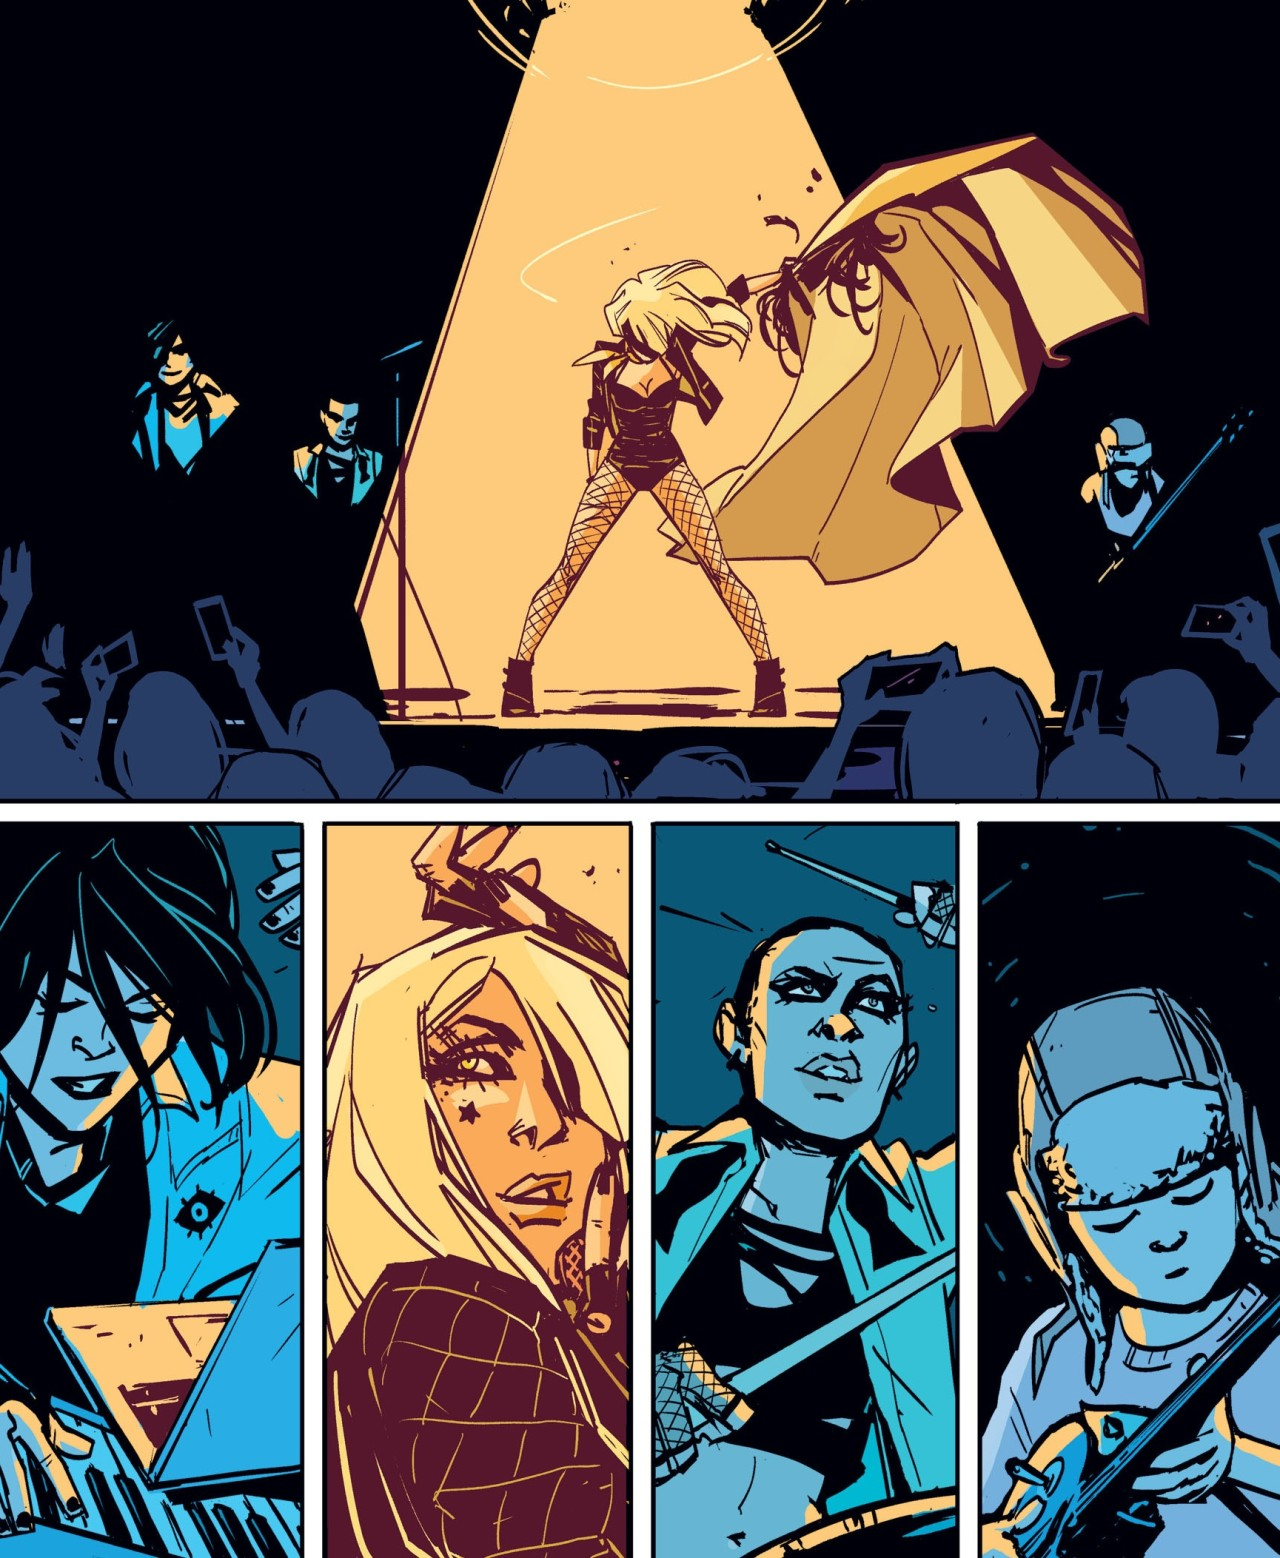 Black Canary #1 is a Promising but Not Quite Classic Single